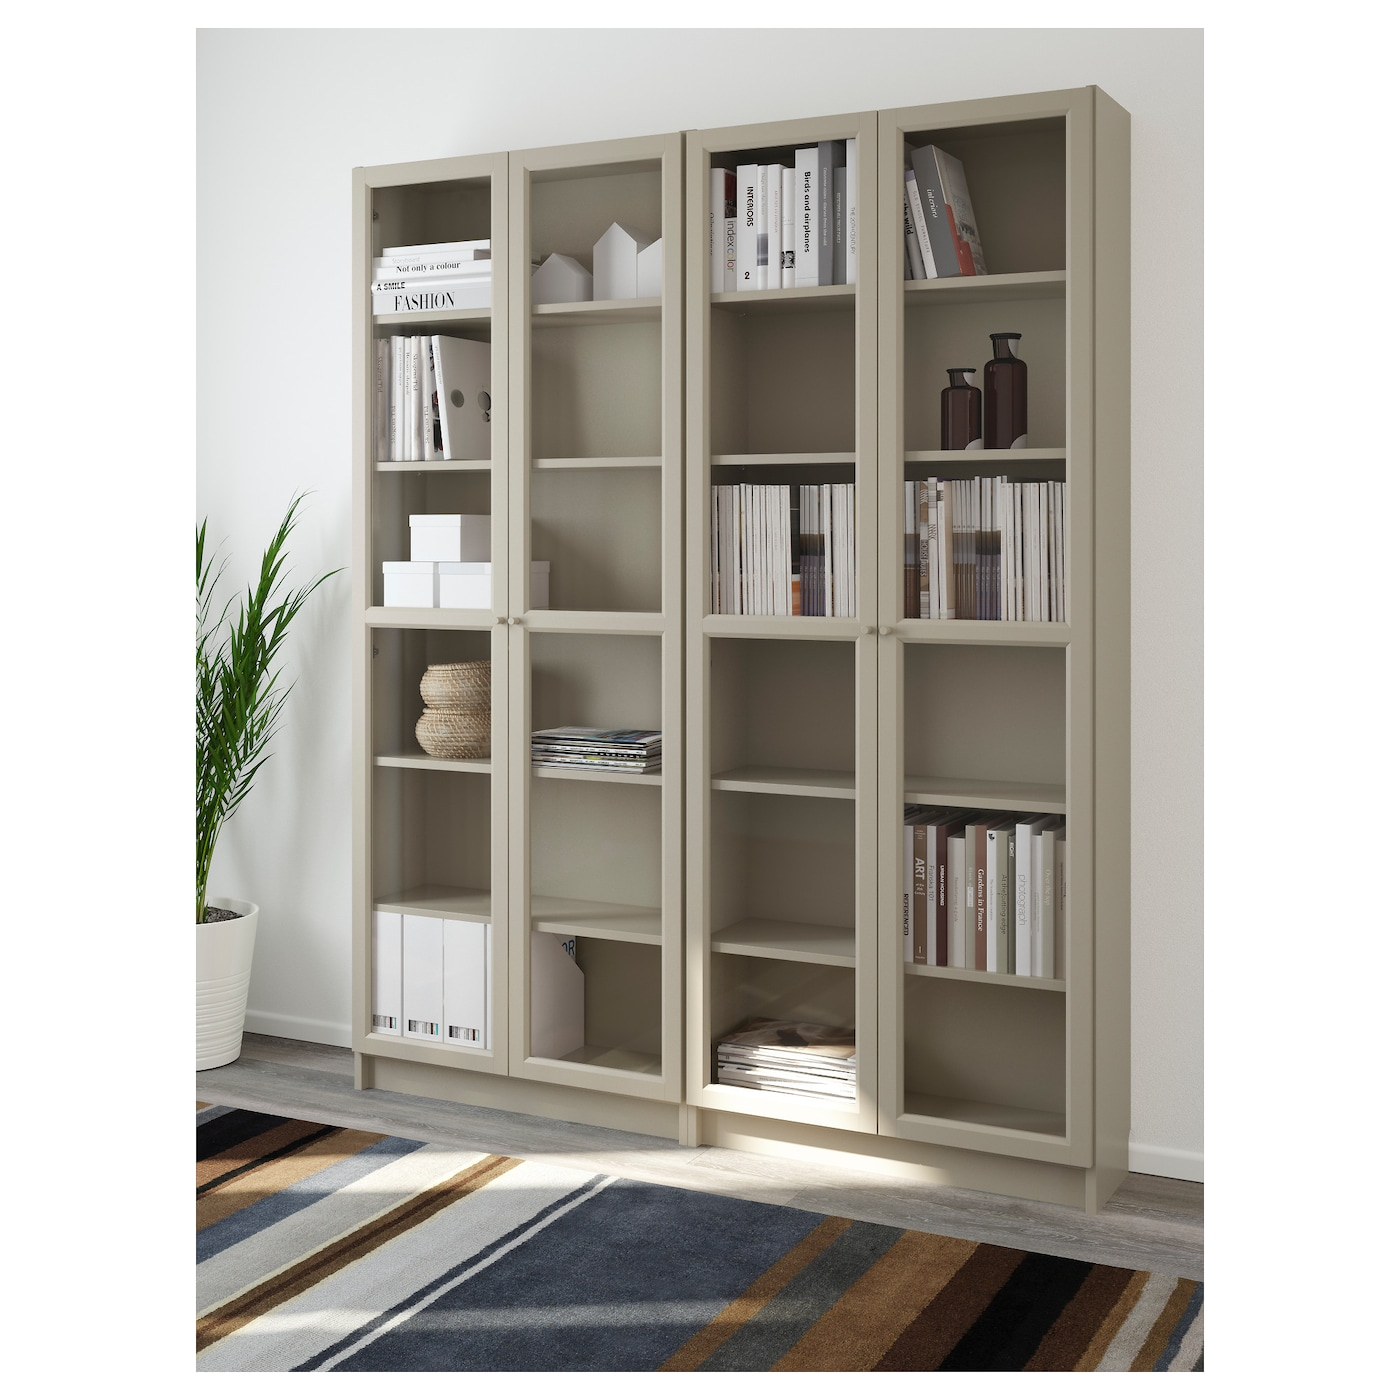 Design Bookcase With Glass Doors billy bookcase beige 160x202x30 cm ikea adjustable shelves adapt space between according to your needs